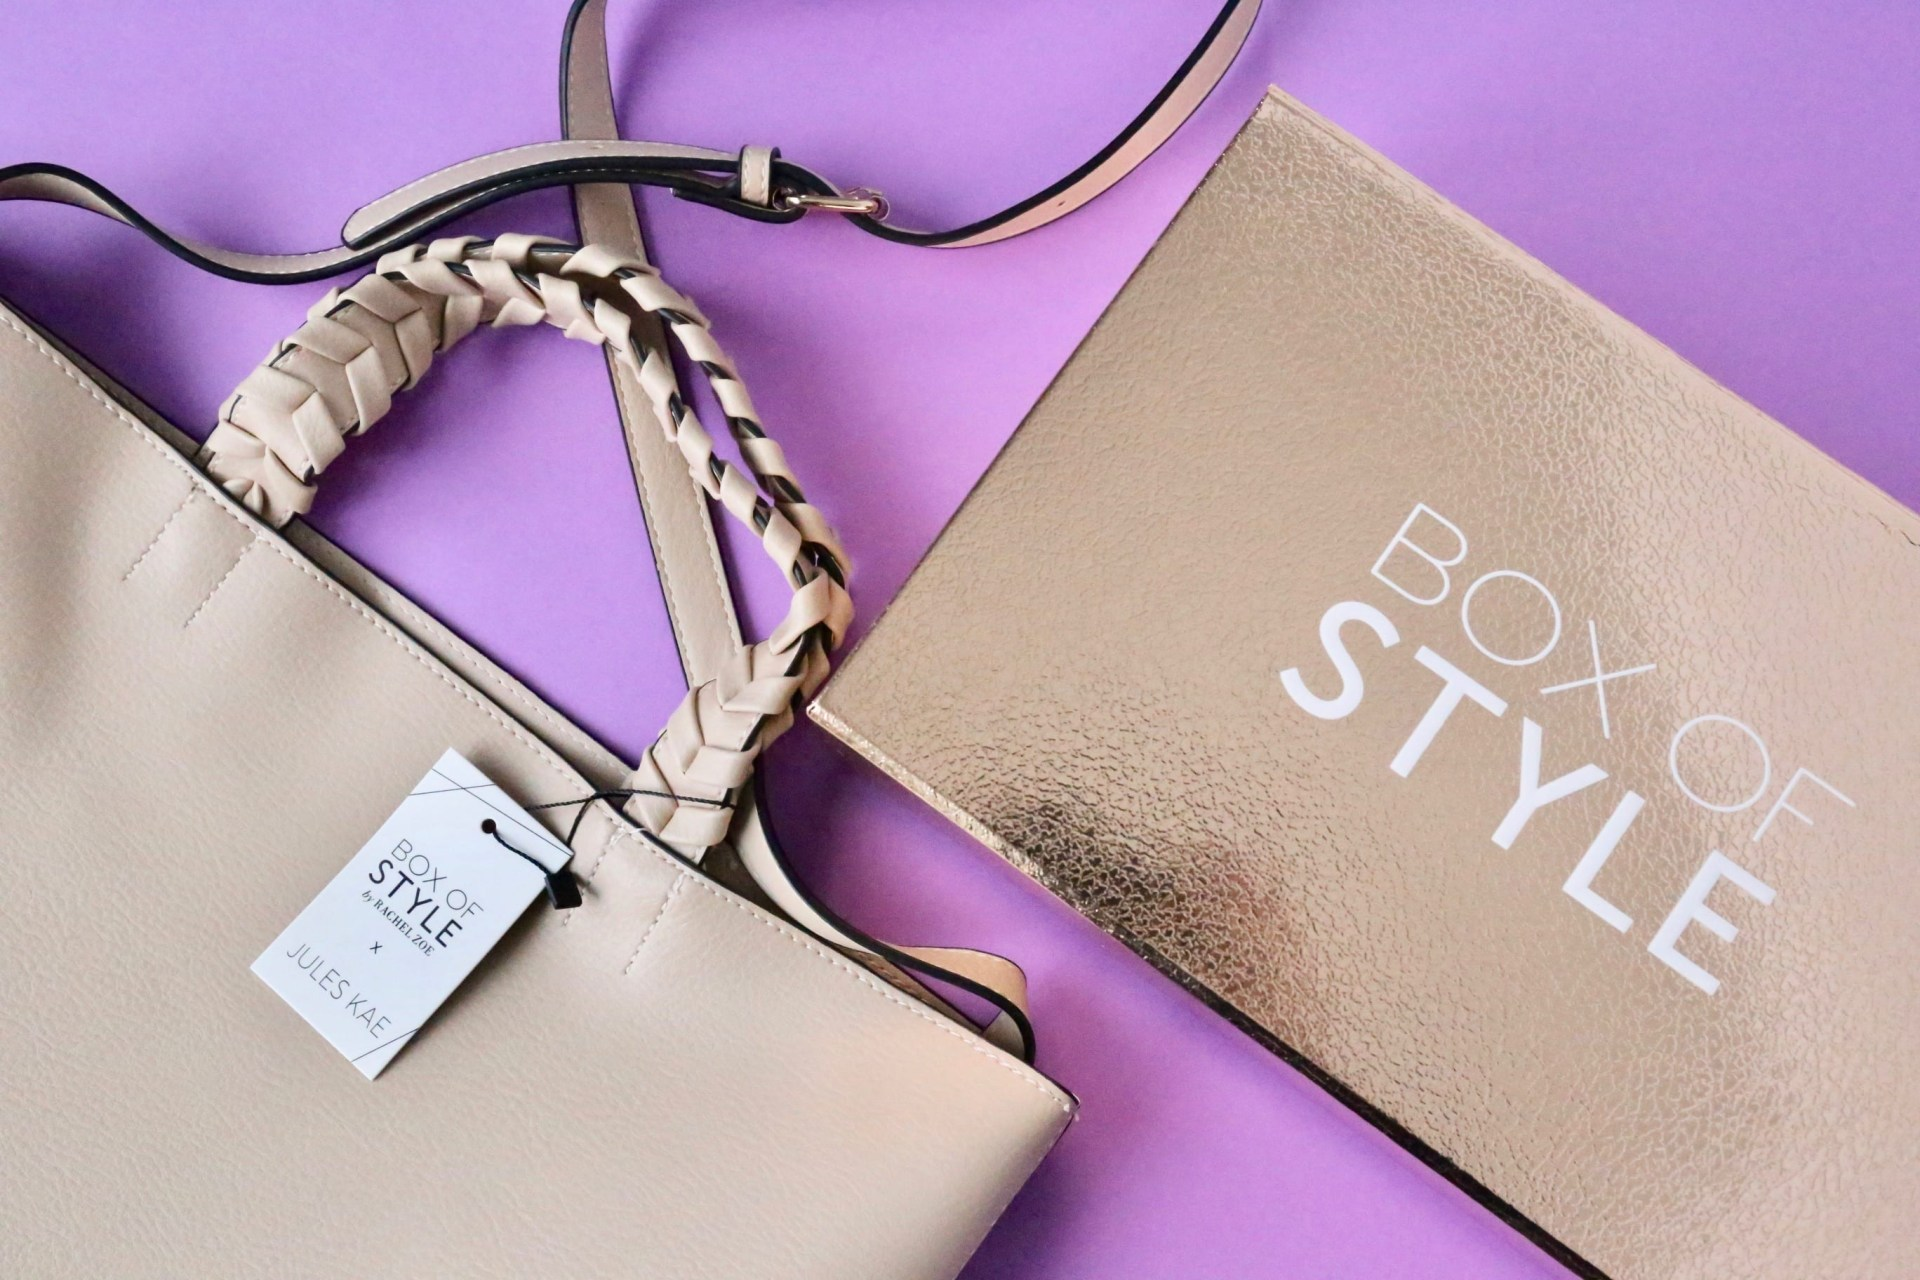 197c9325e85 Box of Style is an exclusive box curated by Rachel Zoe and her team  featuring over  400 of seasonal fashion and beauty finds for only  99.99.